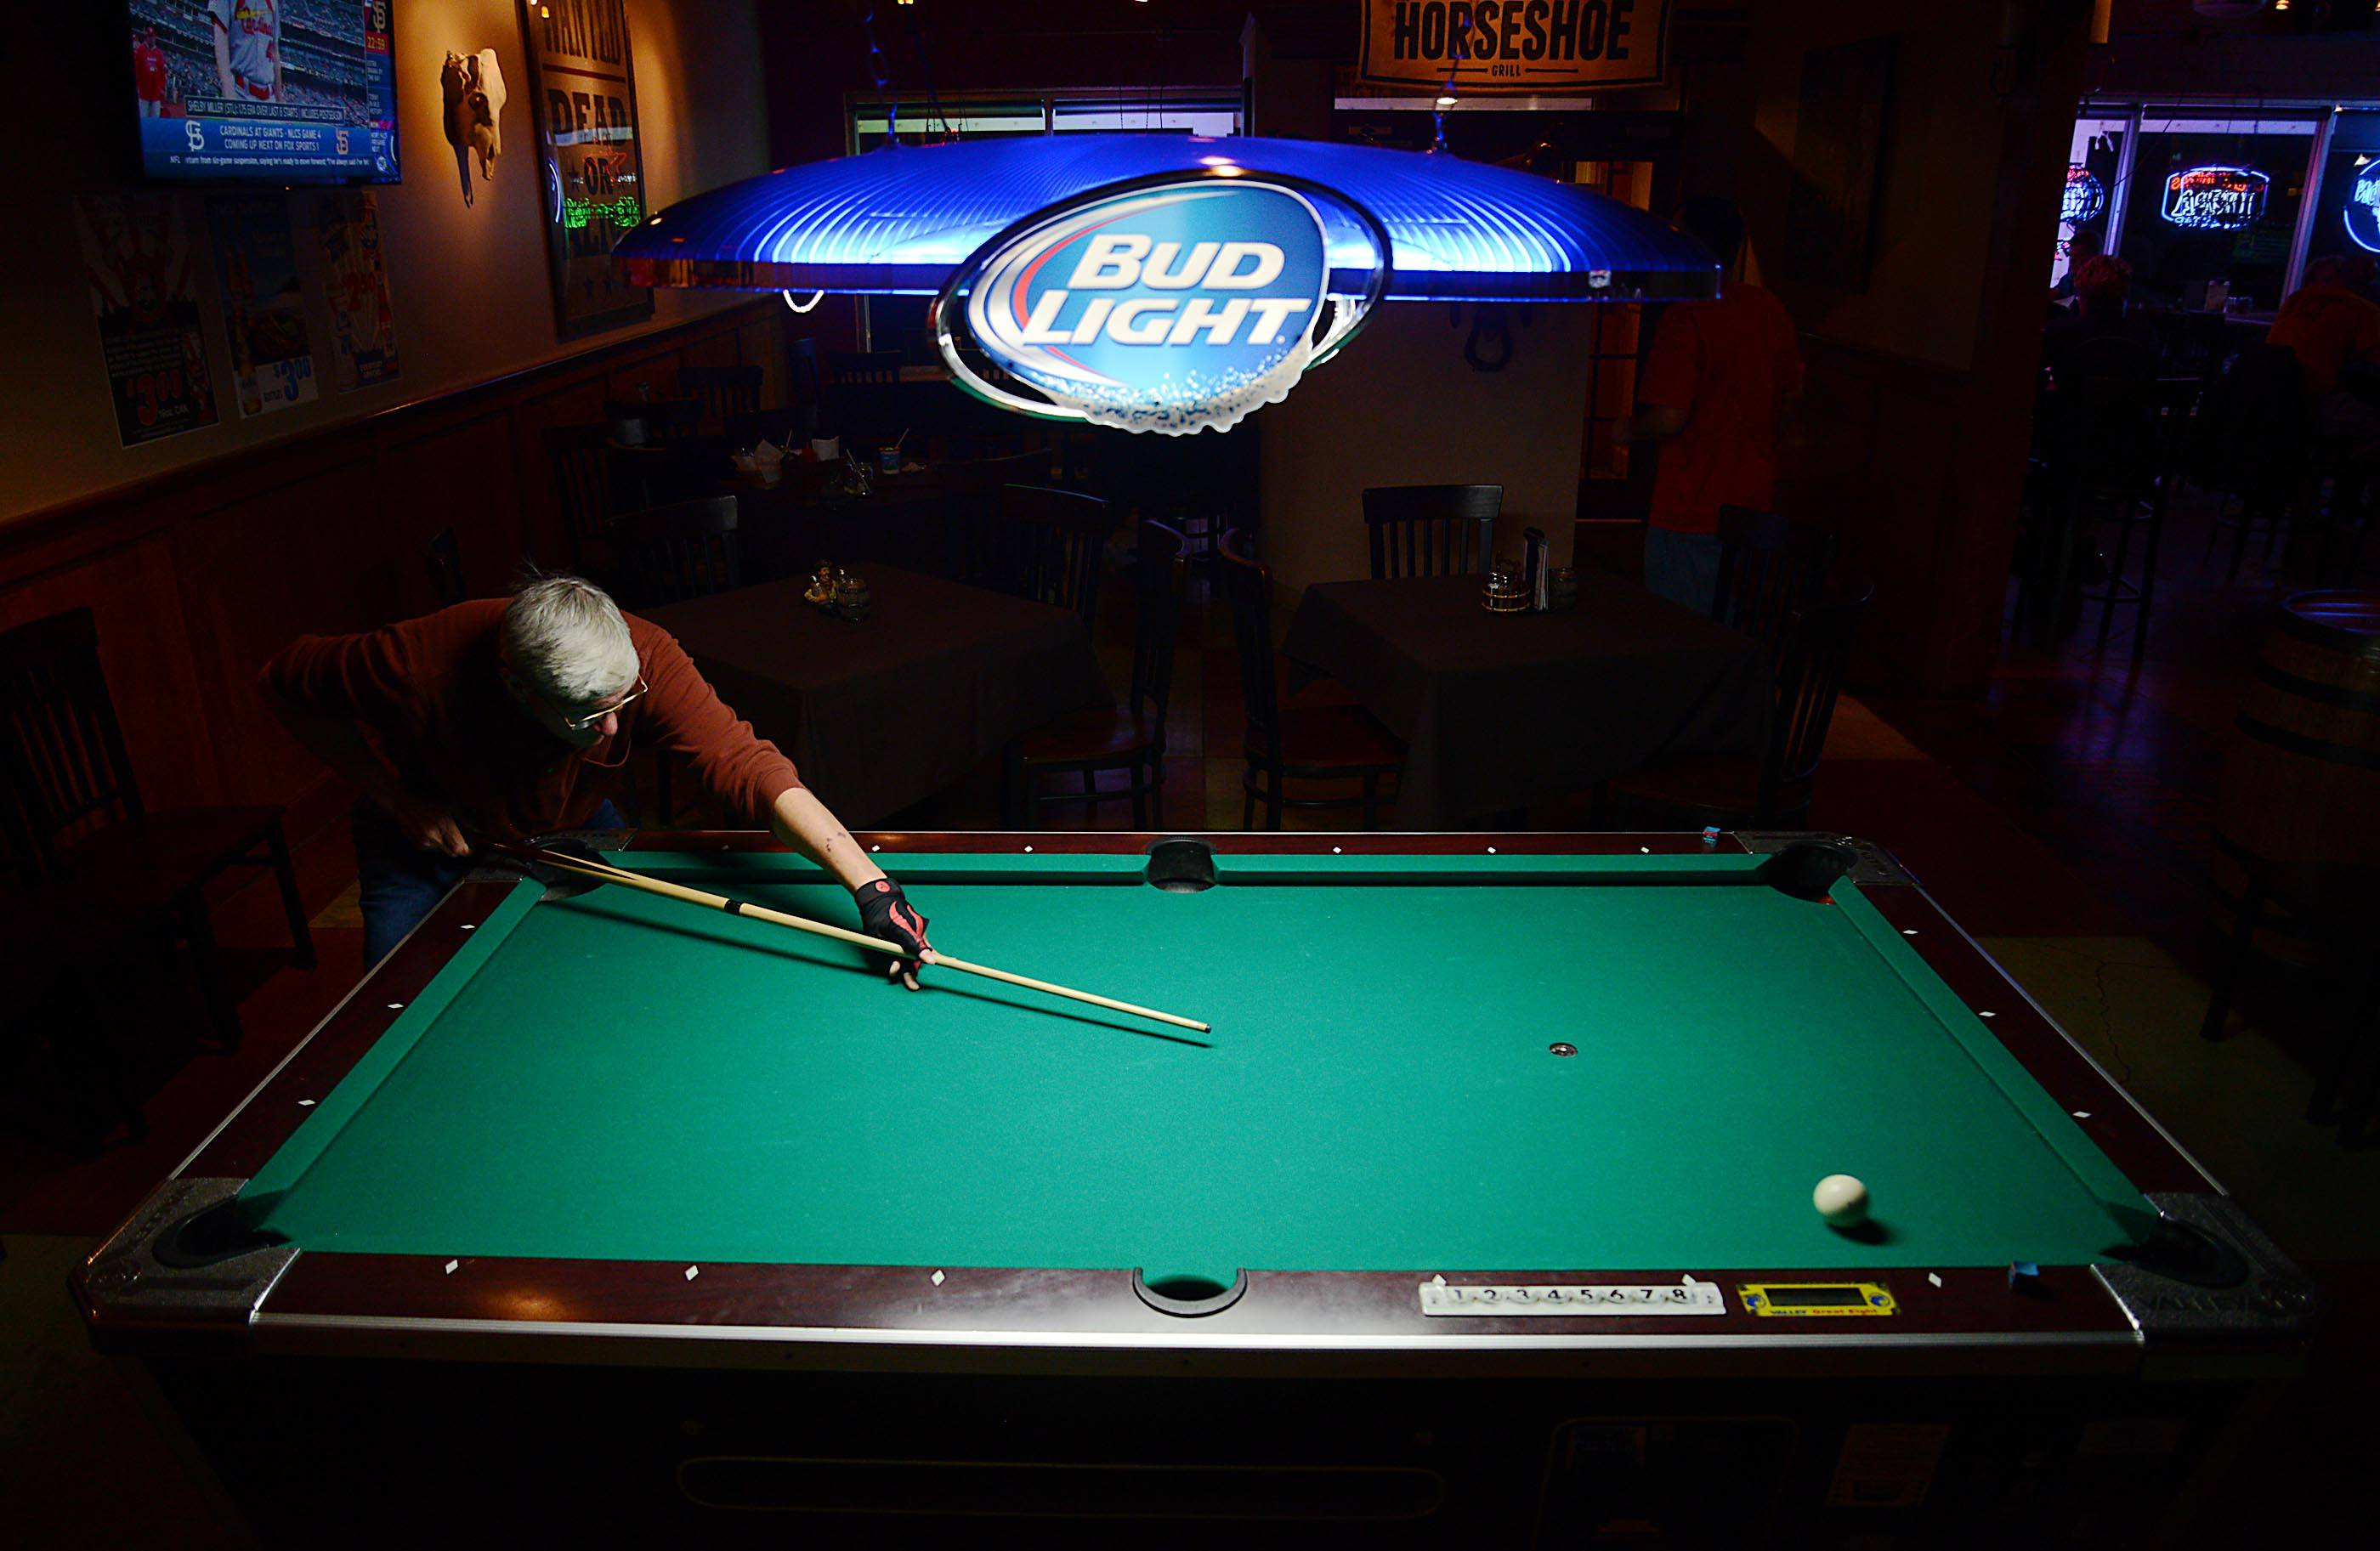 Bob Dorman of Lake Barrington practices his shots on a side-room billiards table at Horseshoe Grill in Lake Barrington.